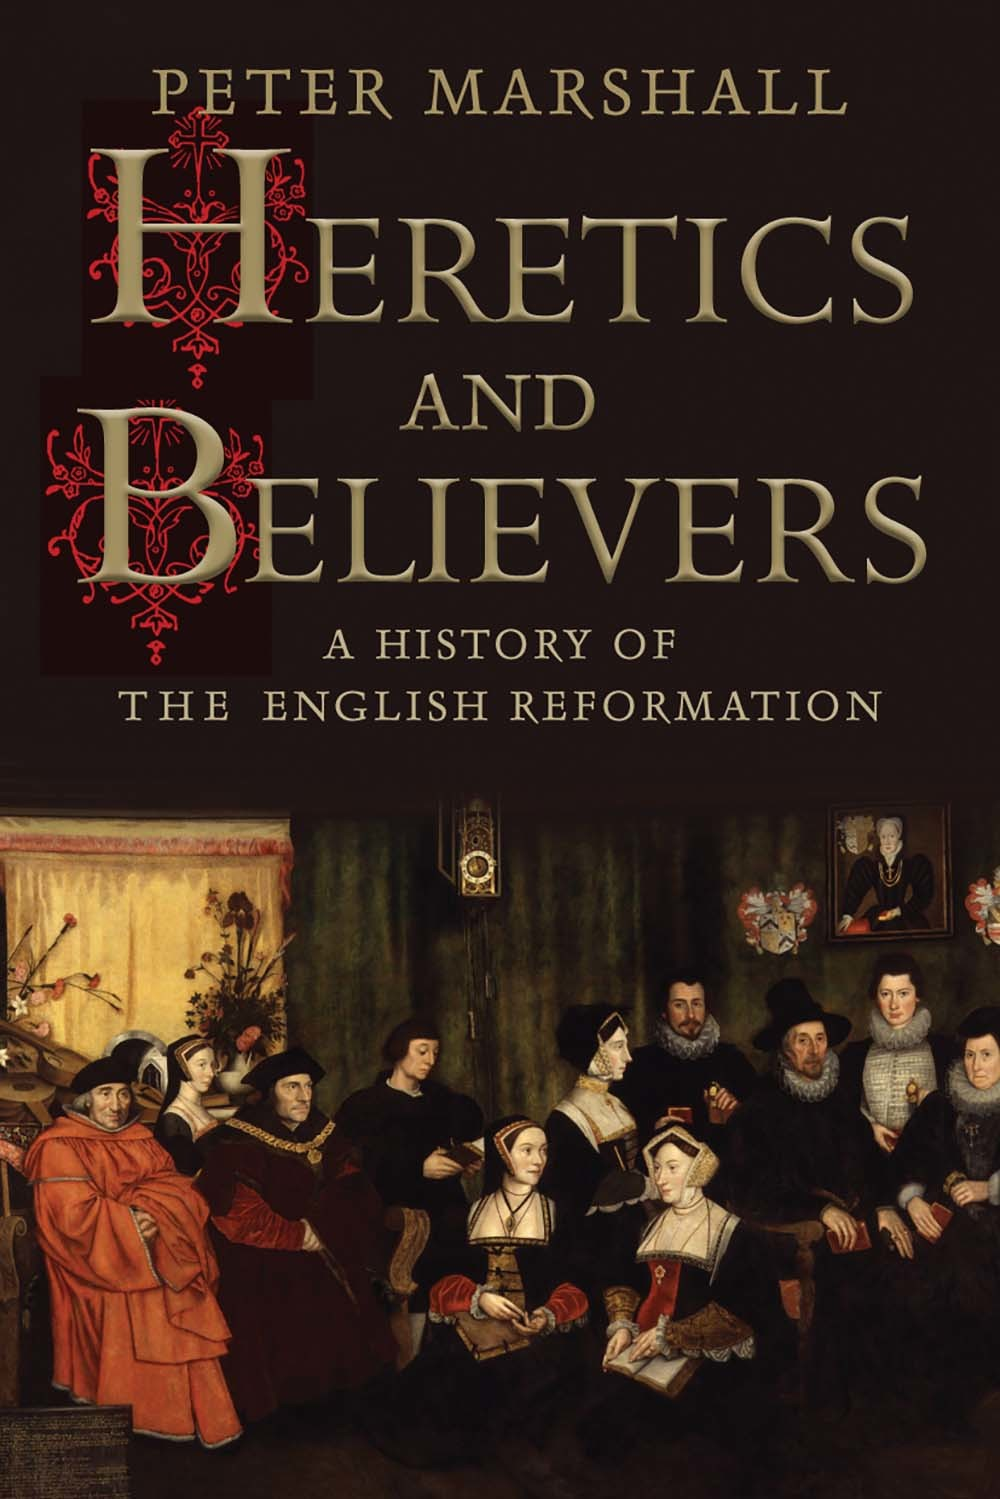 Heretics and believers- a history